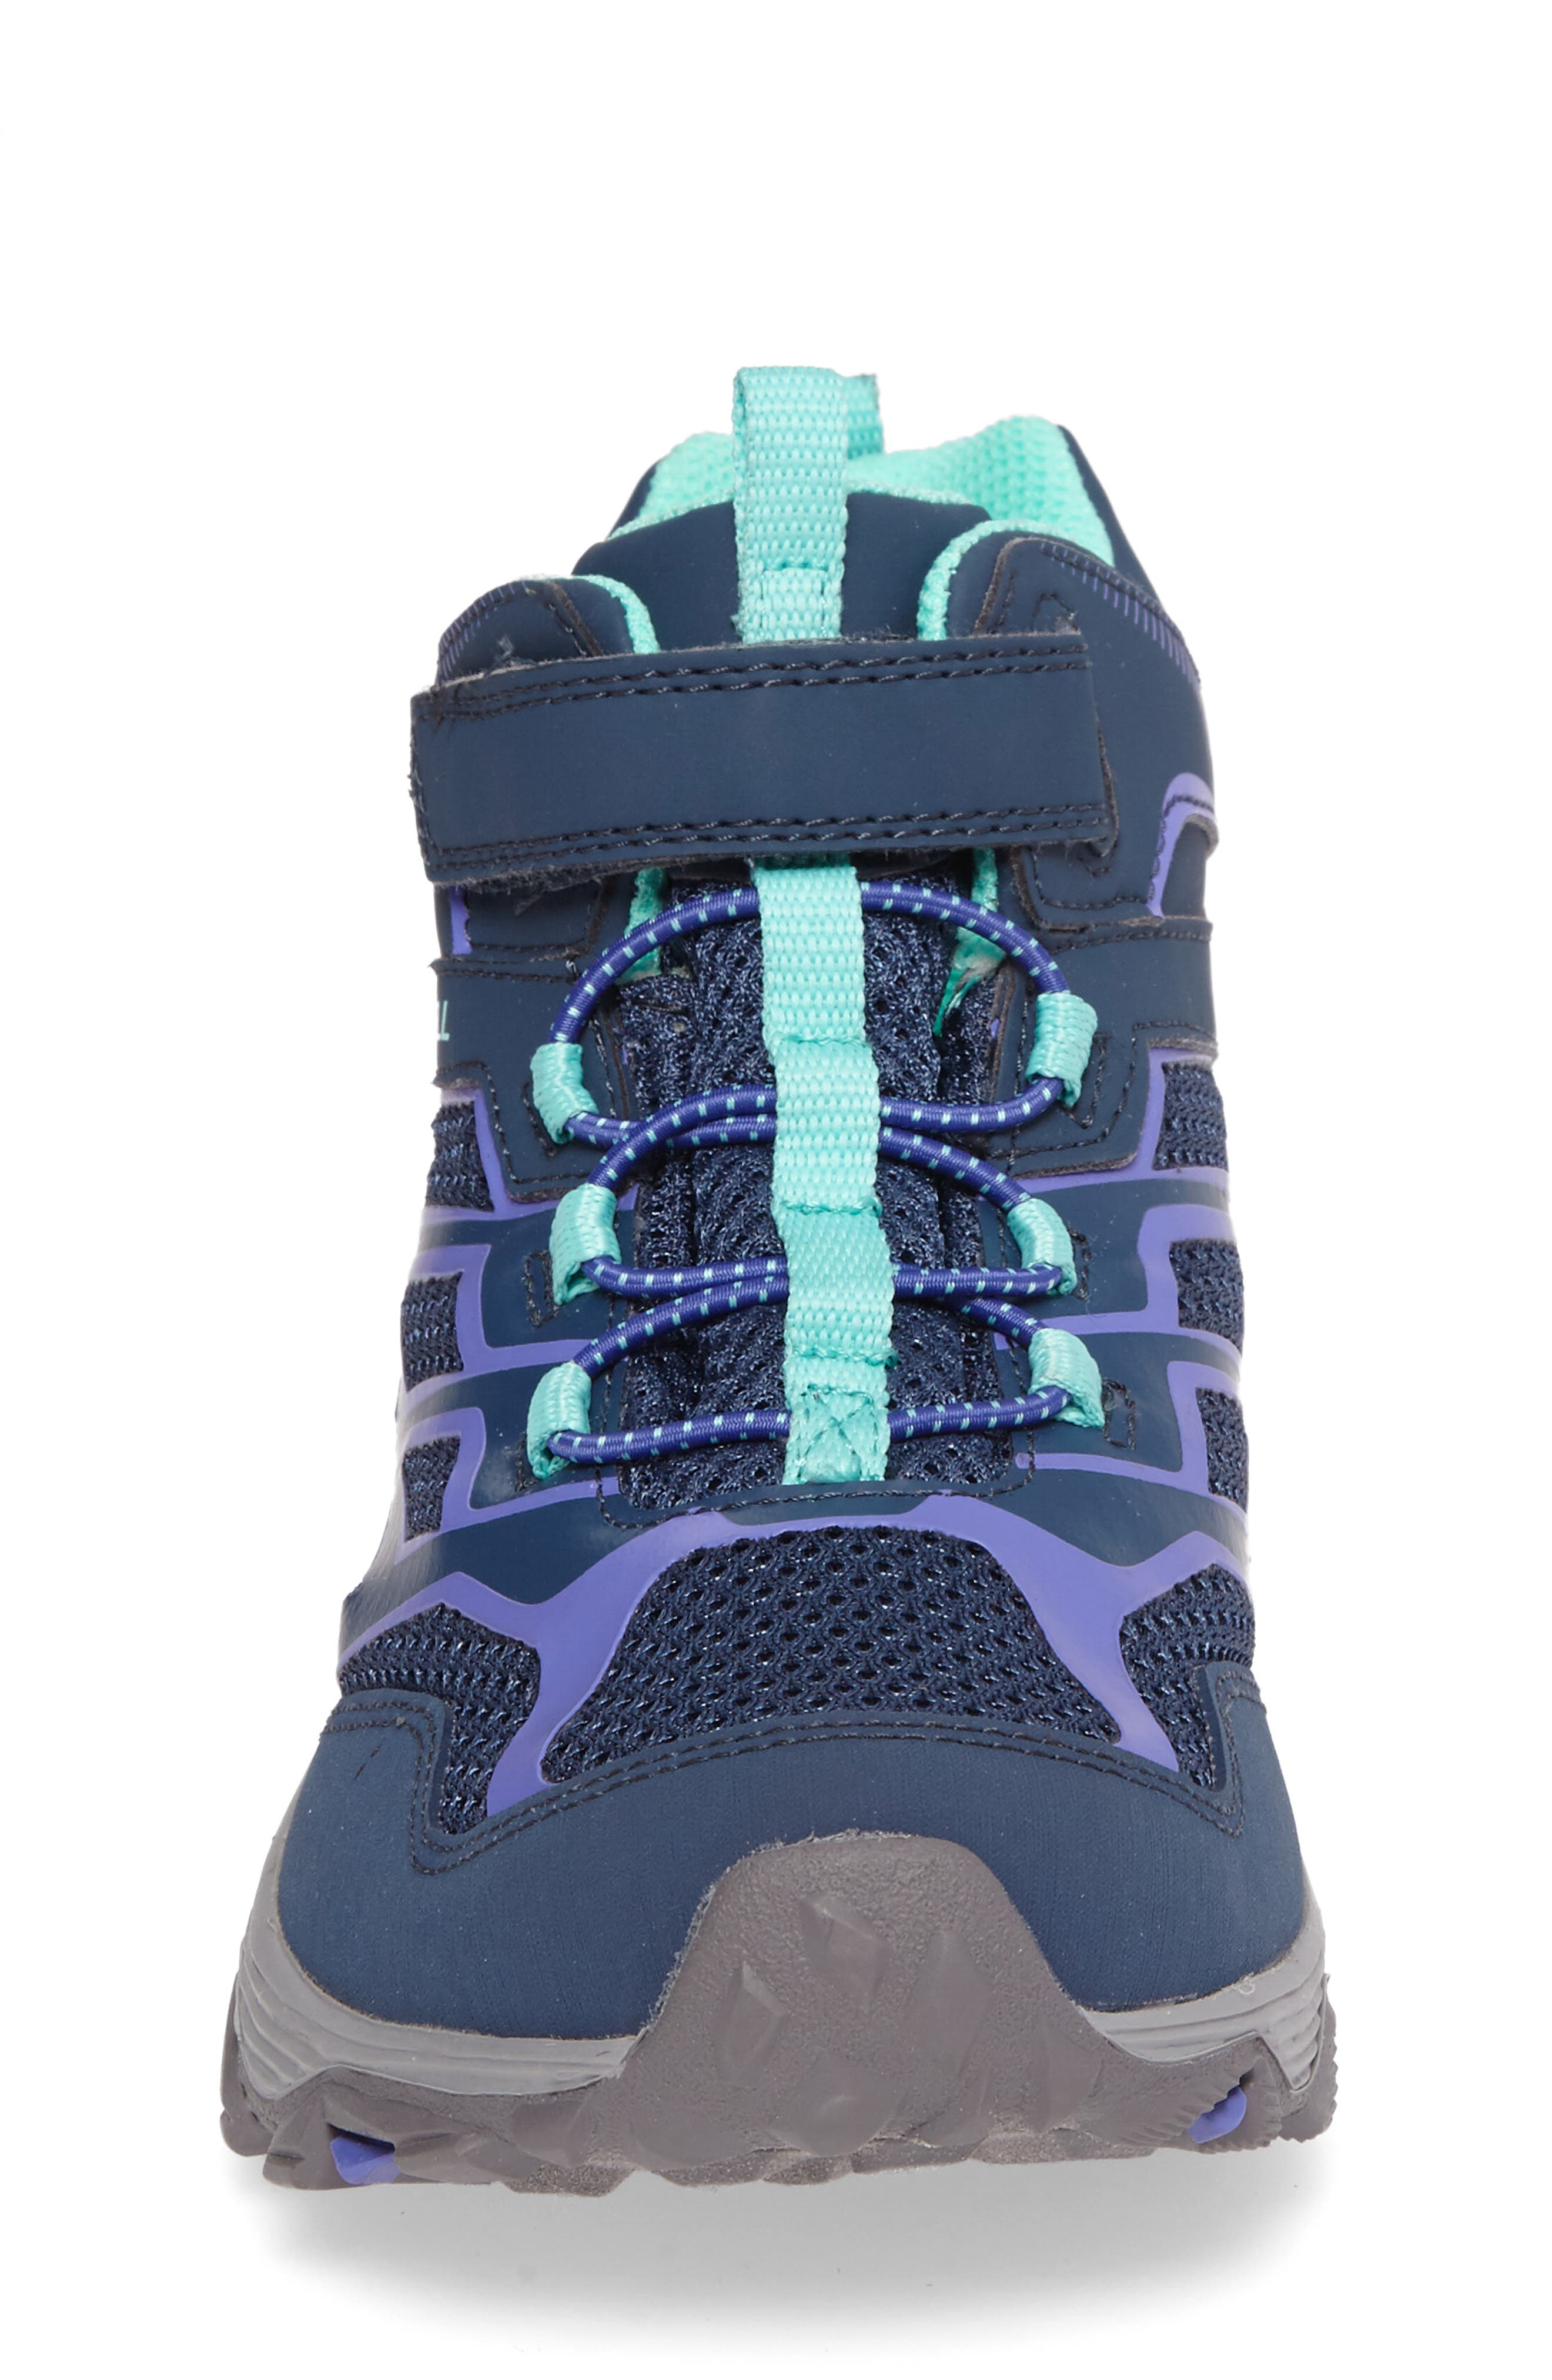 Moab FST Polar Mid Insulated Waterproof Sneaker Boot,                             Alternate thumbnail 4, color,                             410